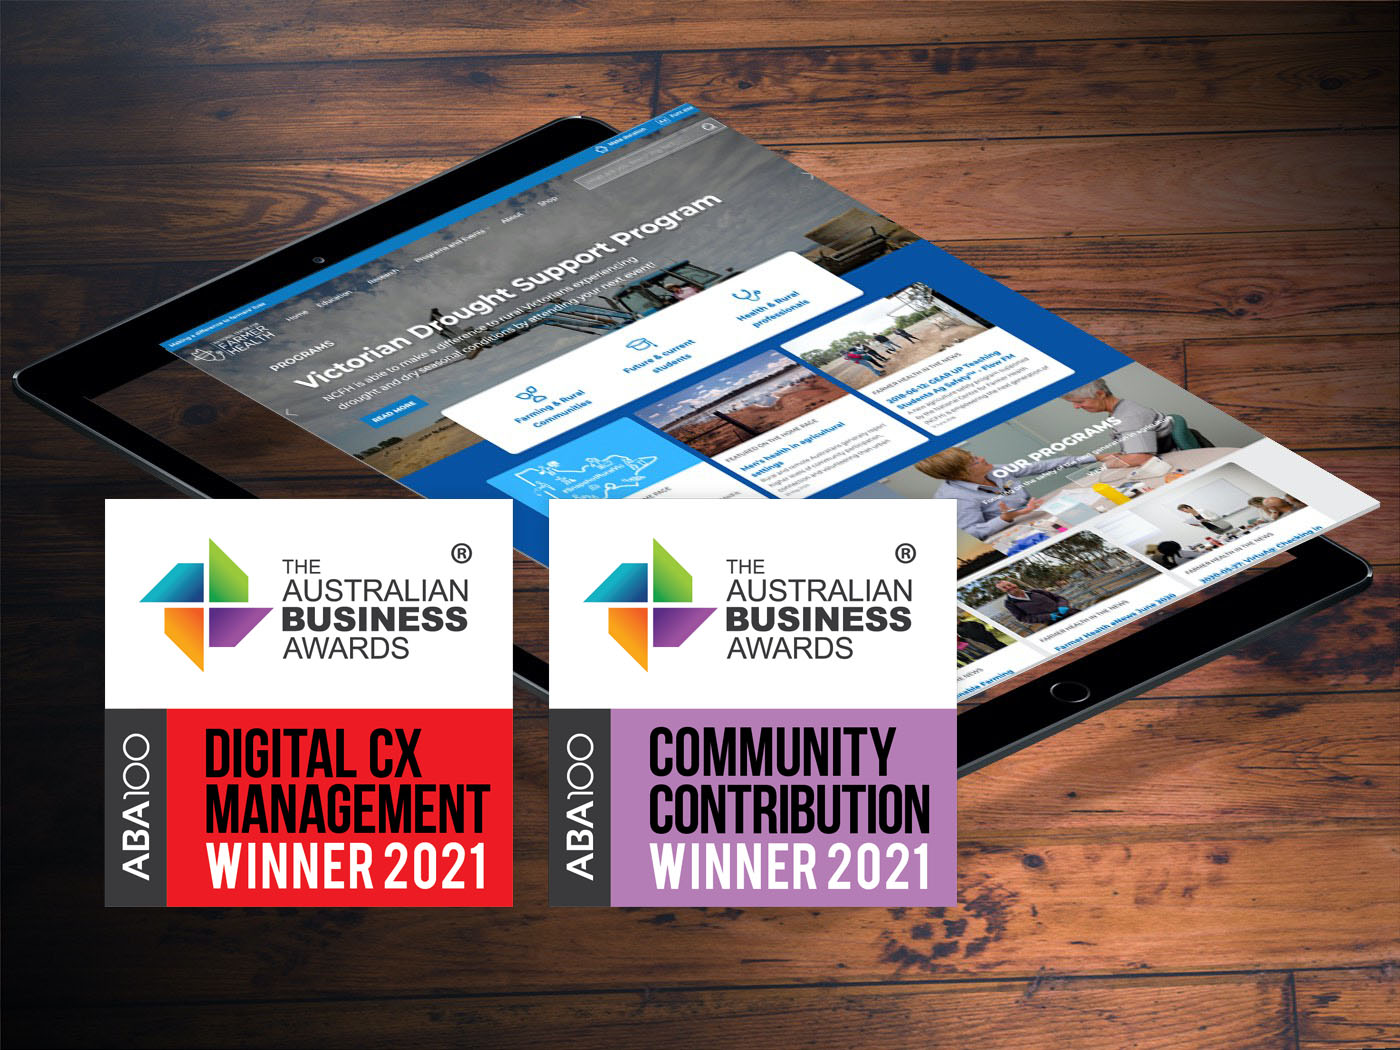 Feature image for Digital CX Management and Community Contribution Winner 2021